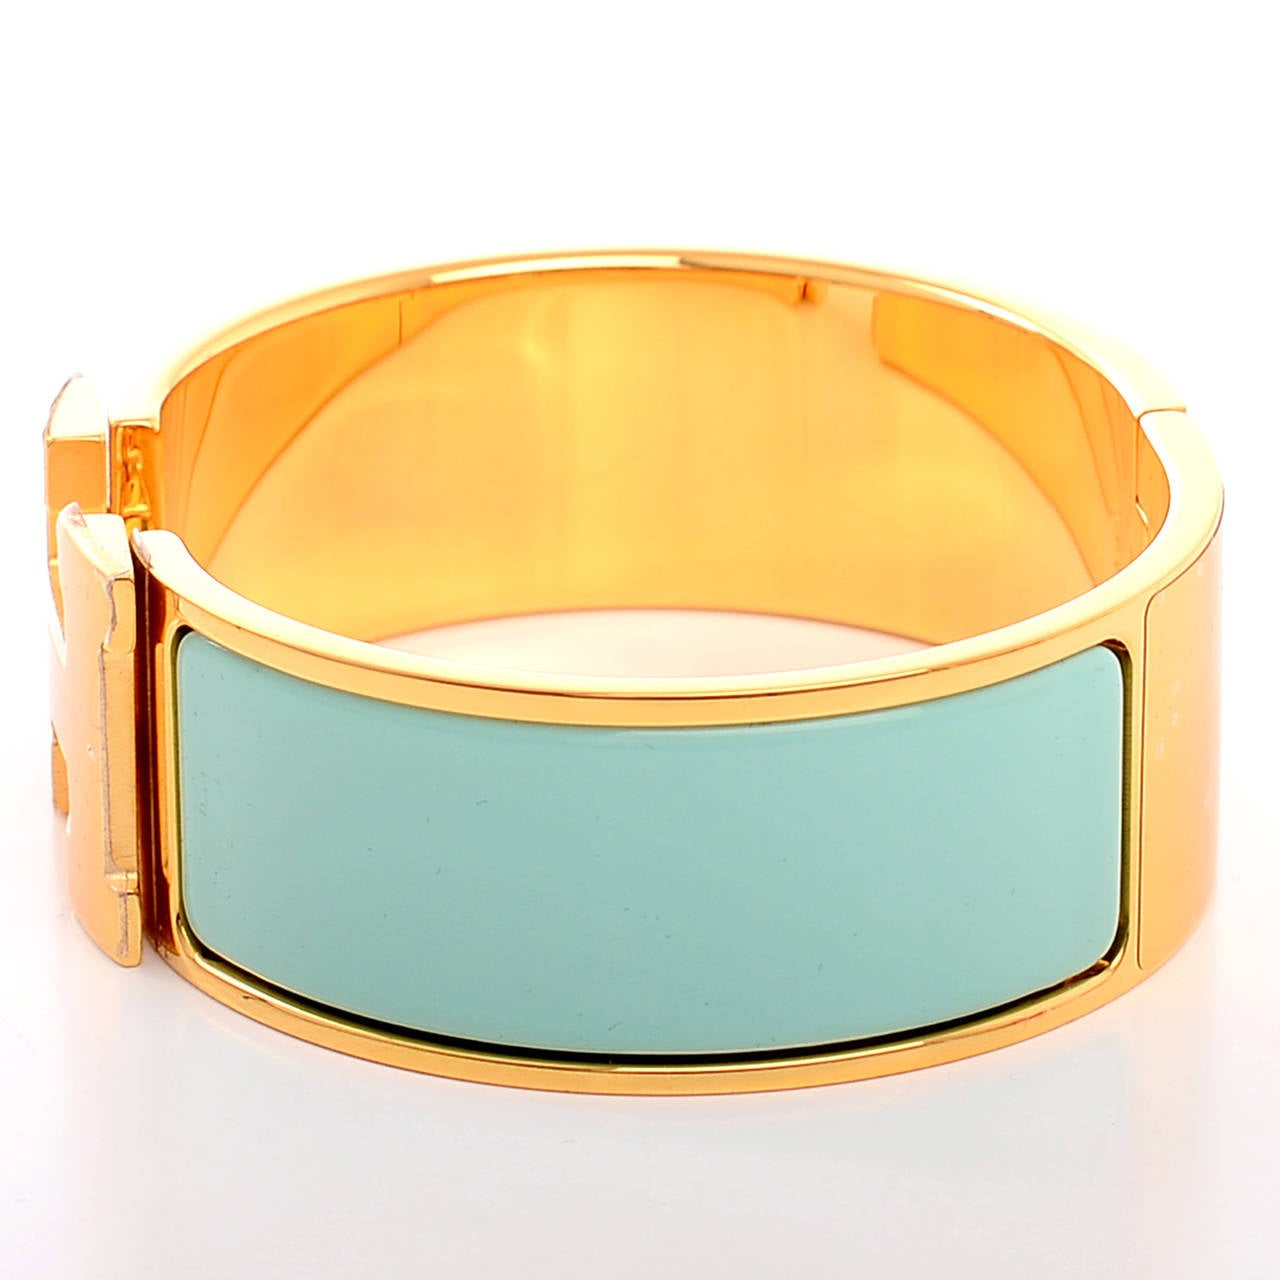 Hermes lagoon clic clac h wide enamel bracelet pm at 1stdibs - Dimensions clic clac ...